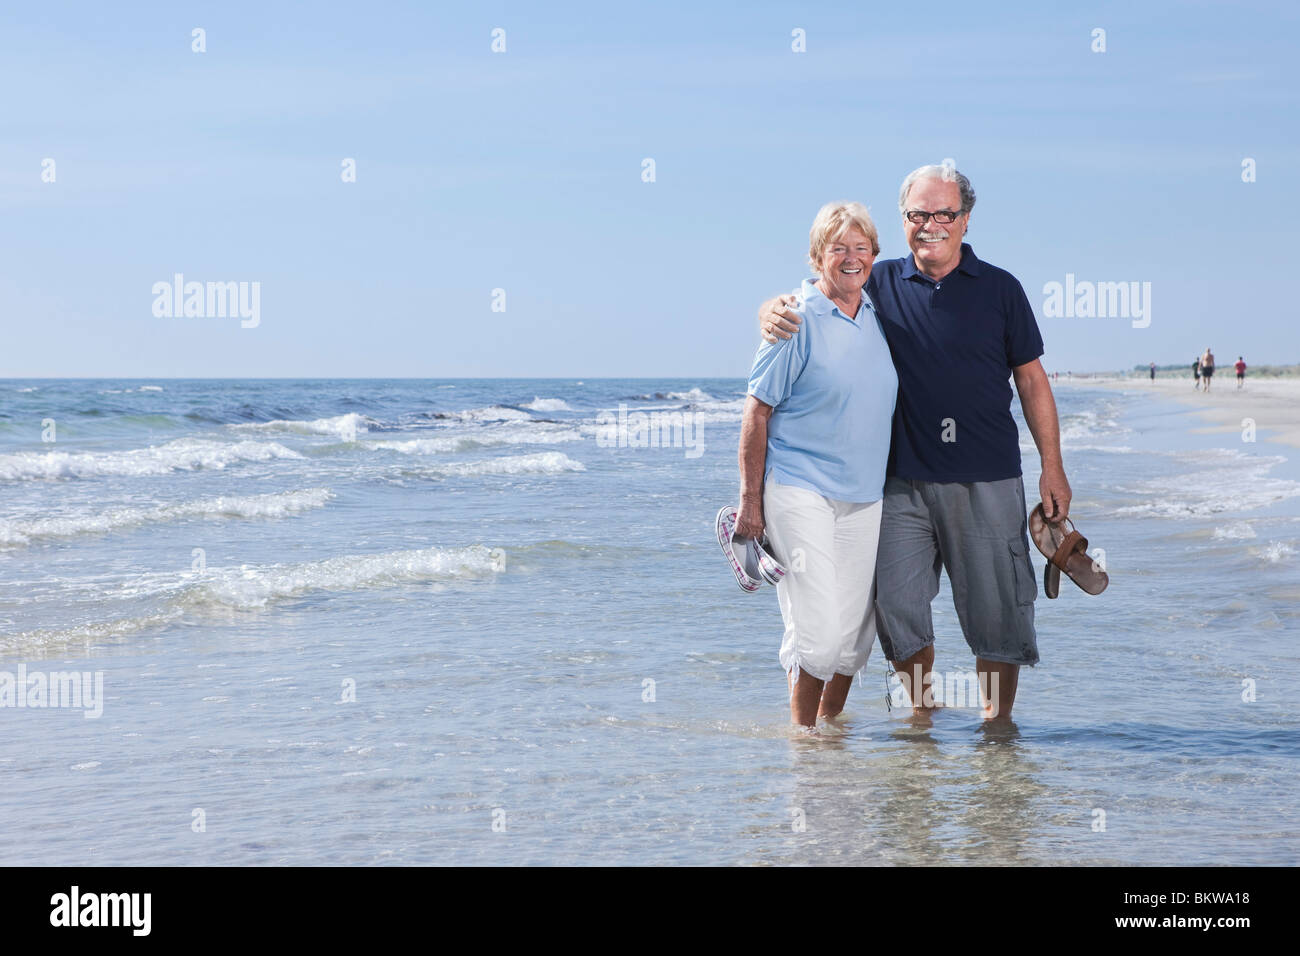 Two elderly people standing in the water's edge - Stock Image